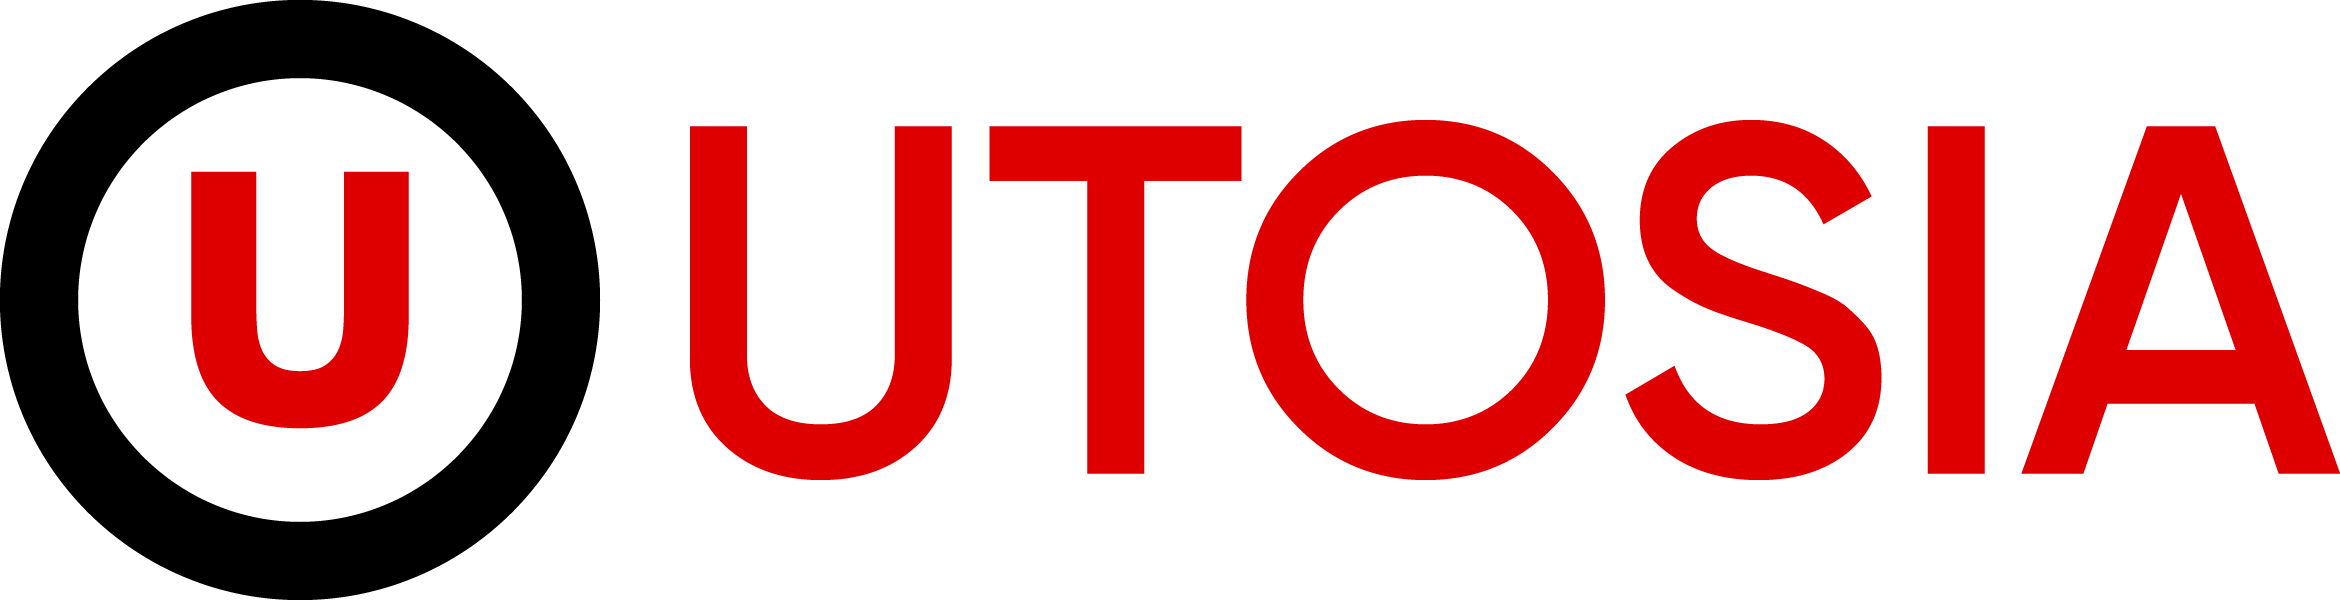 utosia-2.png